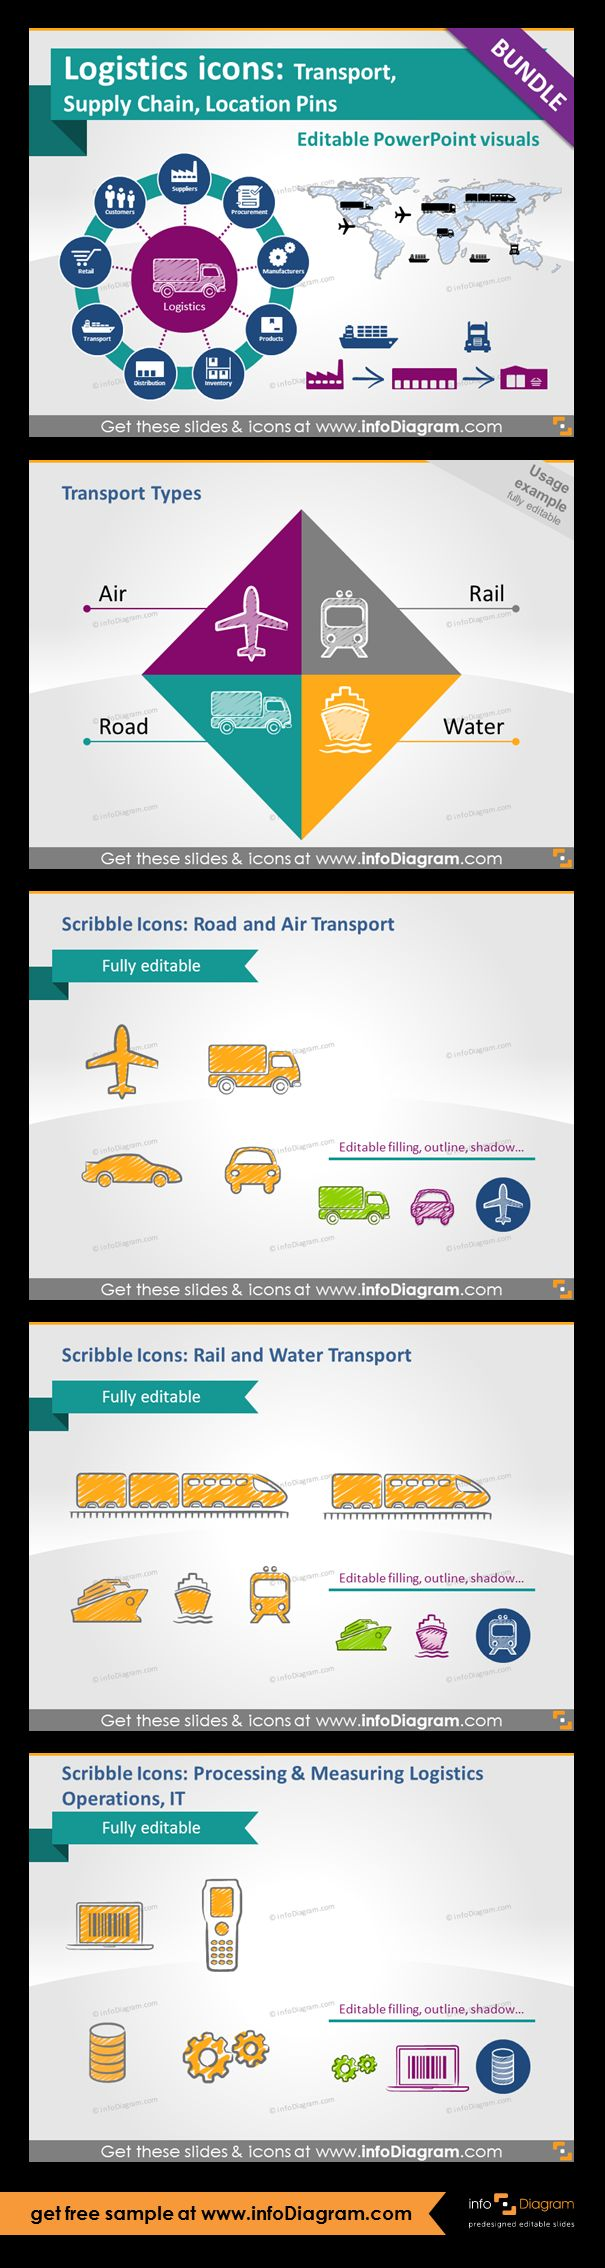 Logistics scribble symbols: road and air transport, rail and water transport means, processing and measuring logistics, operations and IT. Transport types example.